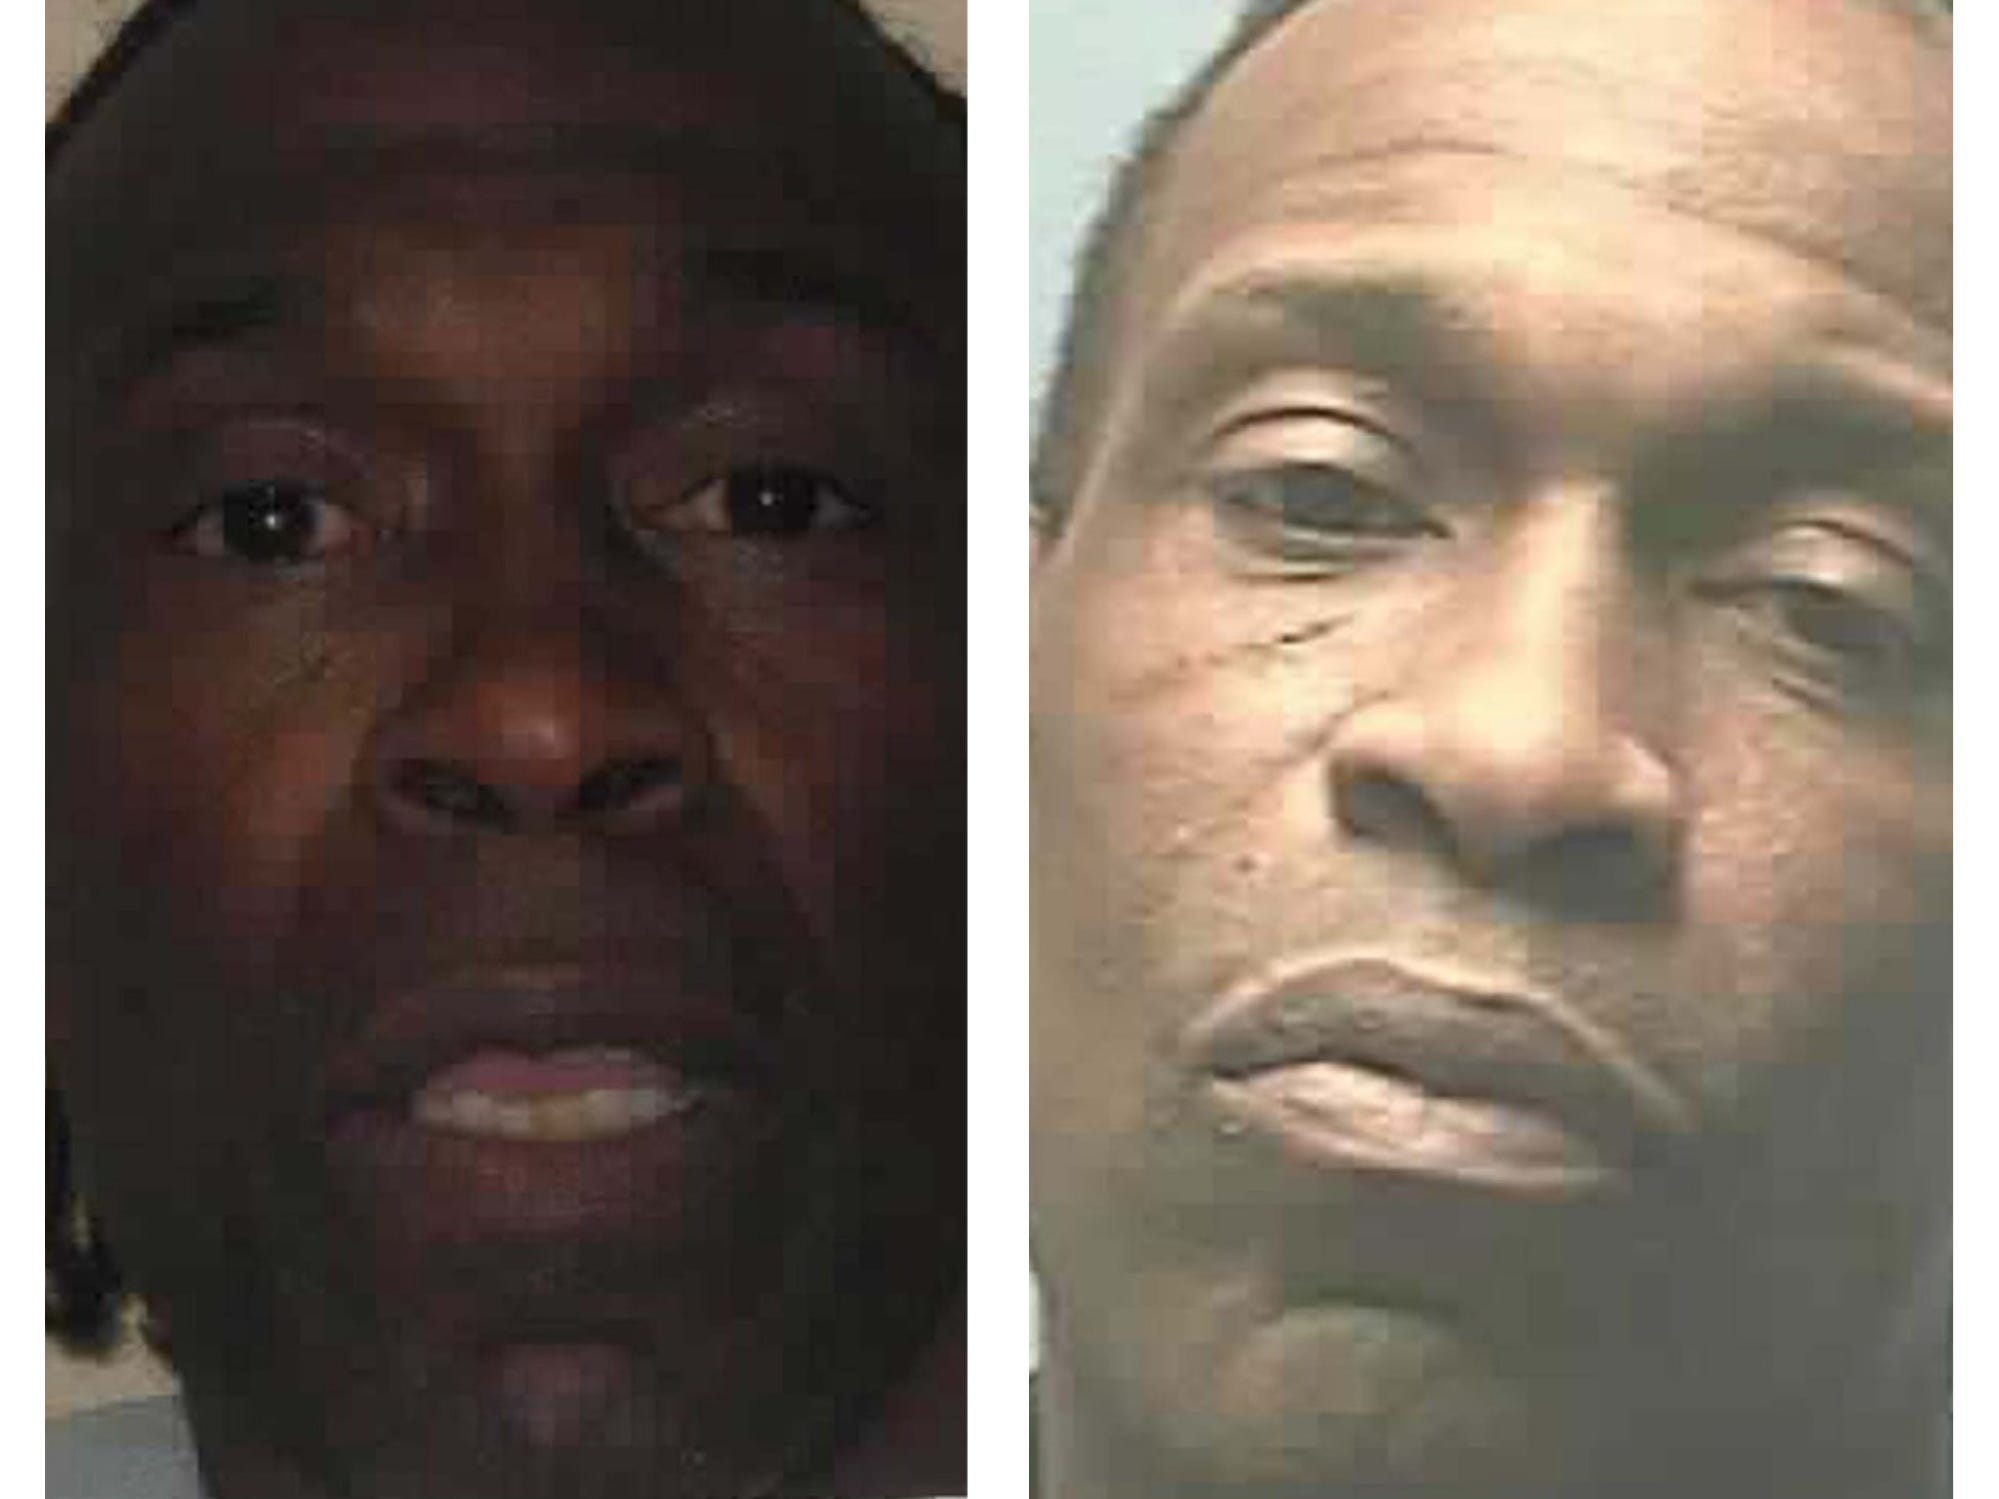 "James Crutcher Jr., 58, is wanted by the Nevada Department of Corrections for escaping from the Casa Grande Transitional Housing center in Las Vegas. He was serving time for burglary. He is 5 feet 8 inches tall, weighs 173 pounds and has black hair and brown eyes. He also has several tattoos including a six-point star on his right arm, the initials ""J.C."" and ""J.R."" on his left arm and the word ""Cassanova"" on his back."